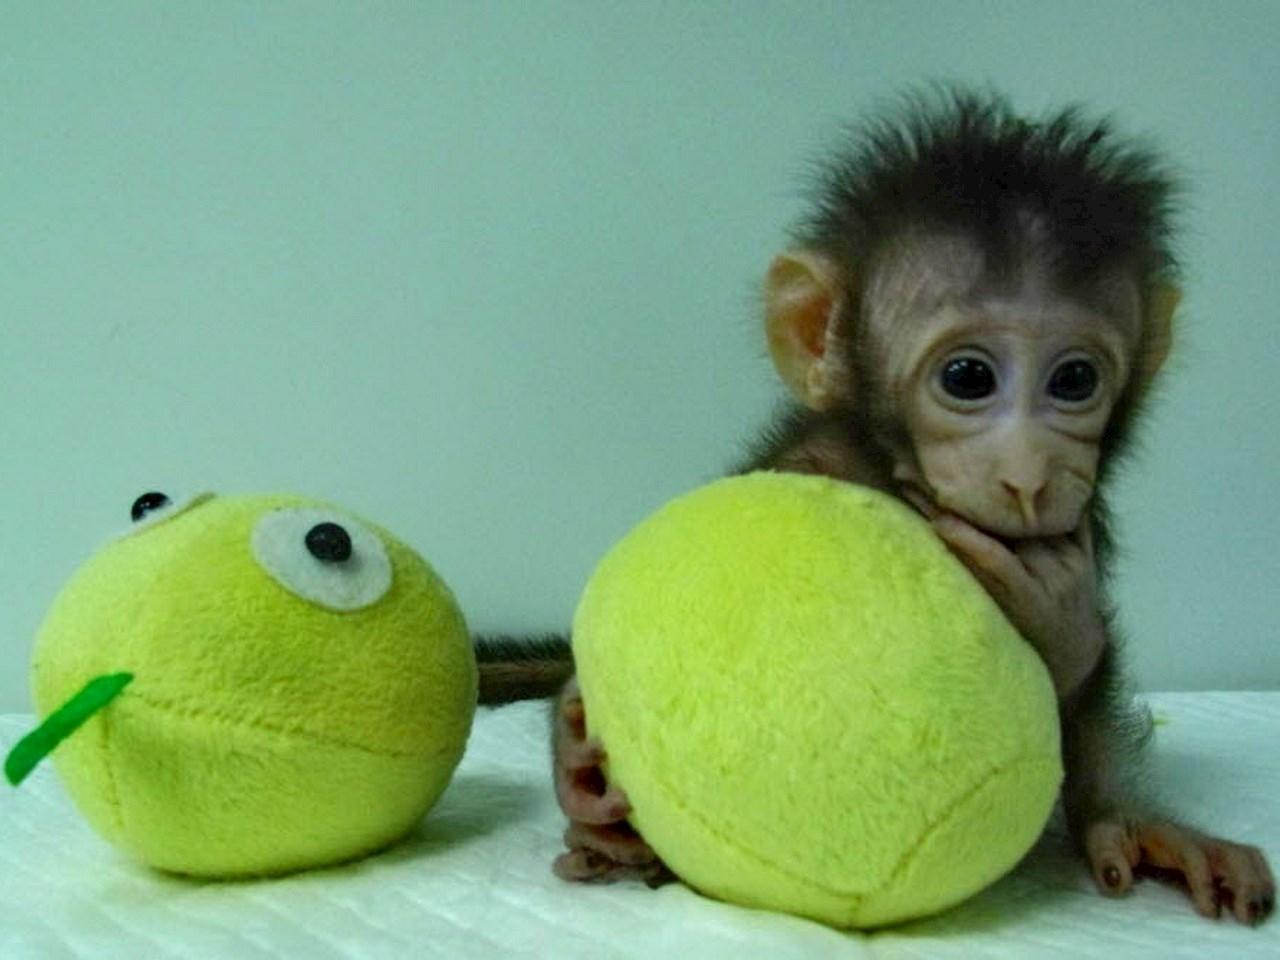 Huah Hua, a cloned long tailed macaque monkey